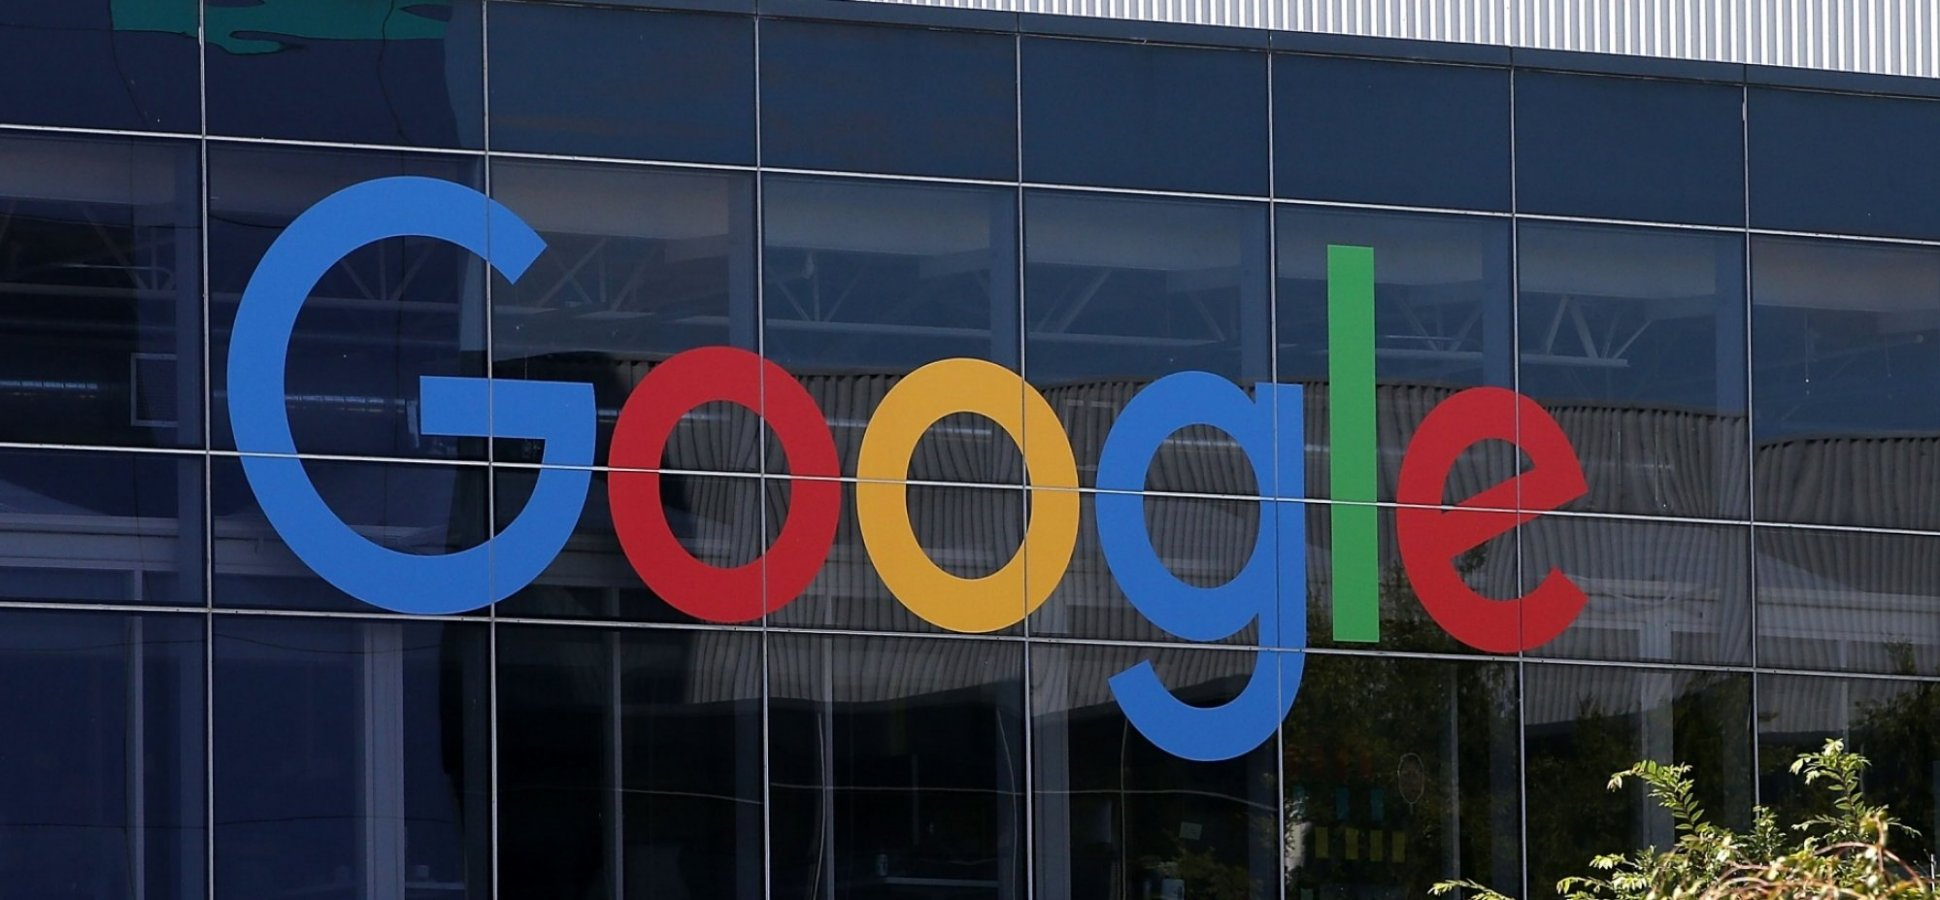 Google Automatically Rejects Most Resumes for Common Mistakes You've Probably Made Too